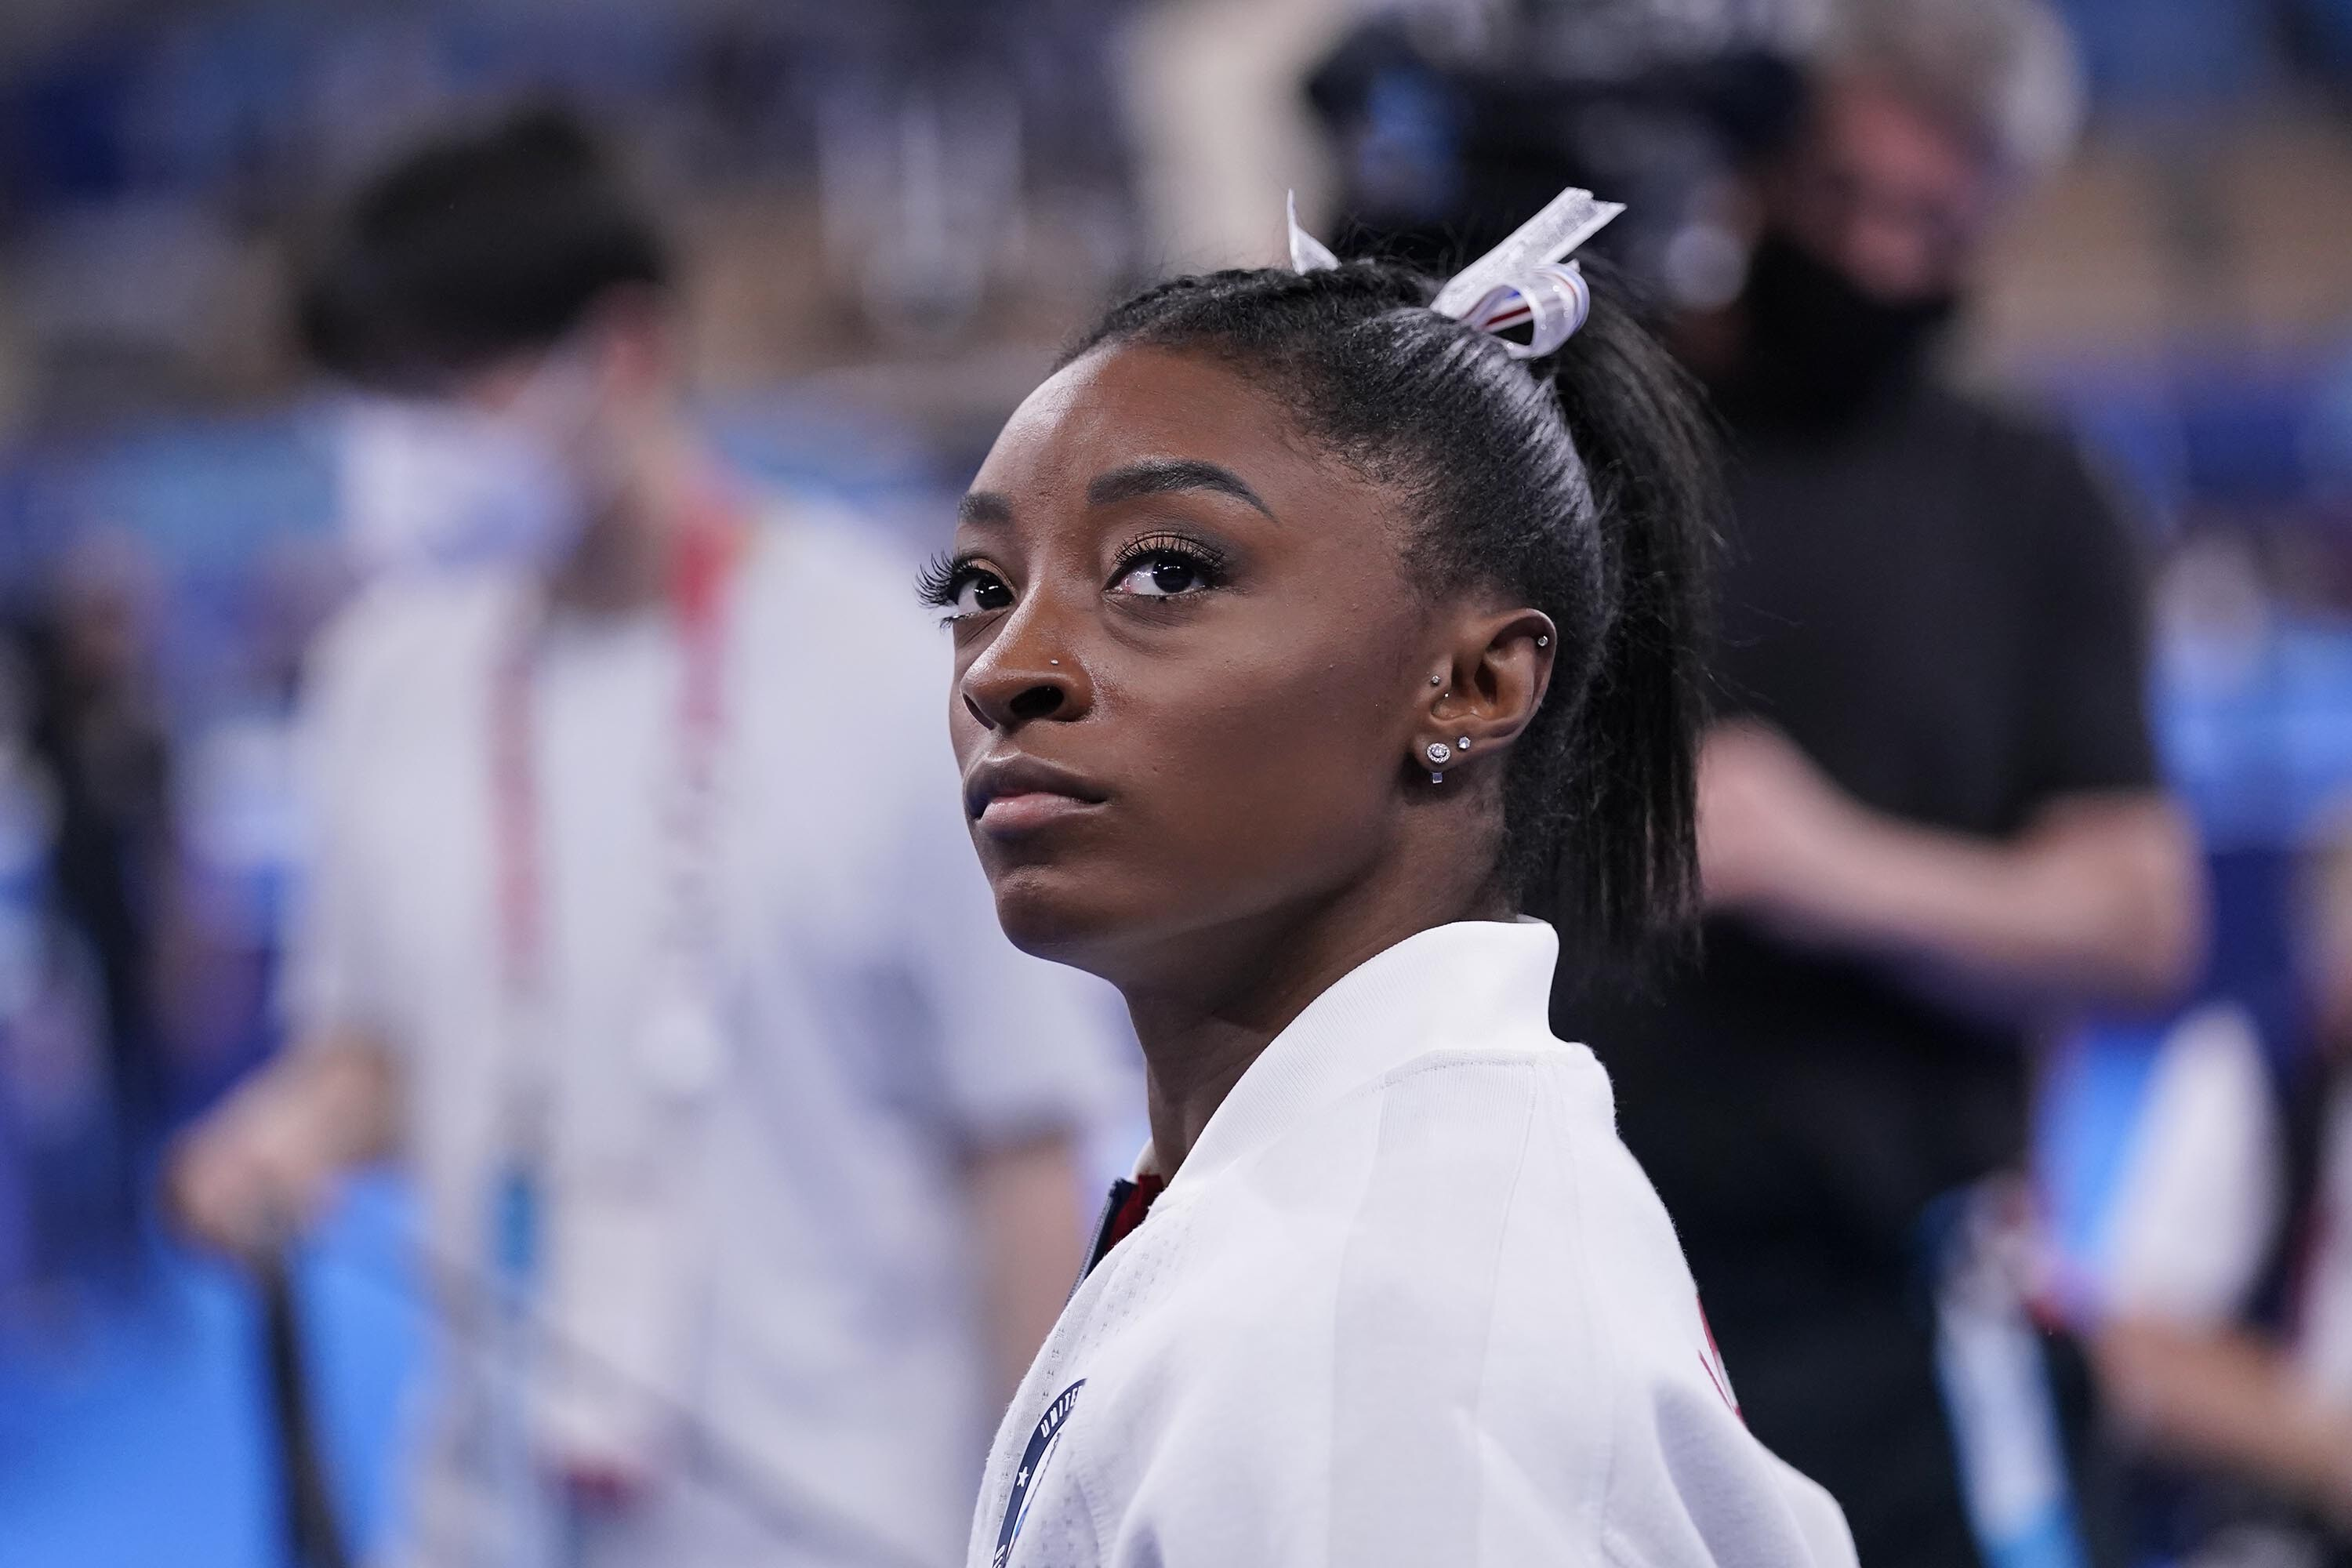 Simone Biles withdraws from all-around final at Tokyo 2020 to focus on mental health